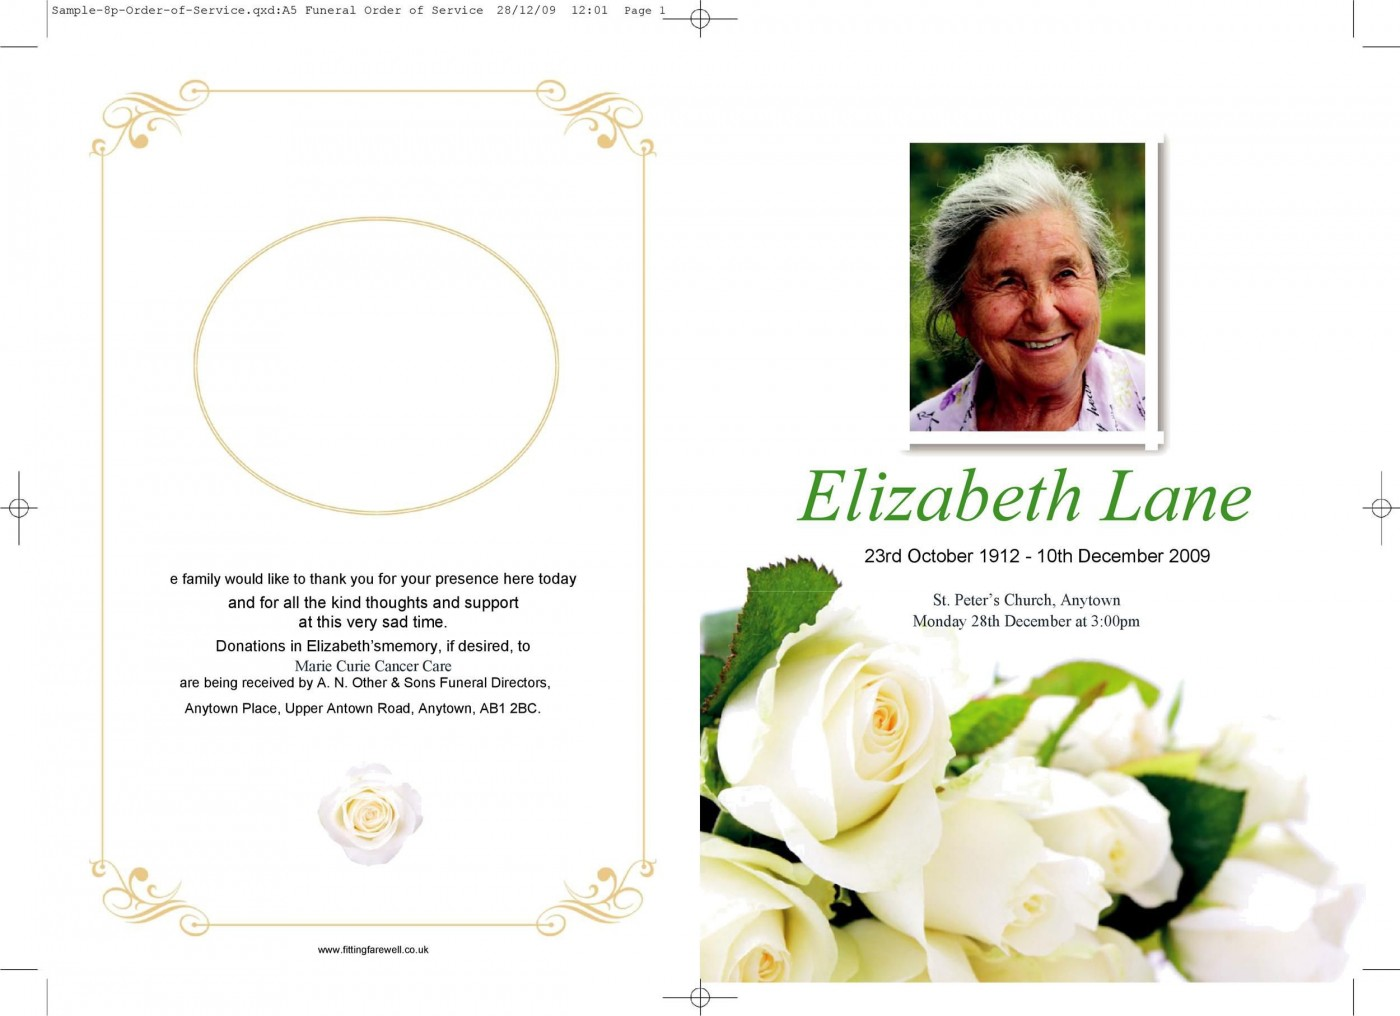 009 Remarkable Free Download Template For Funeral Program High Resolution 1400